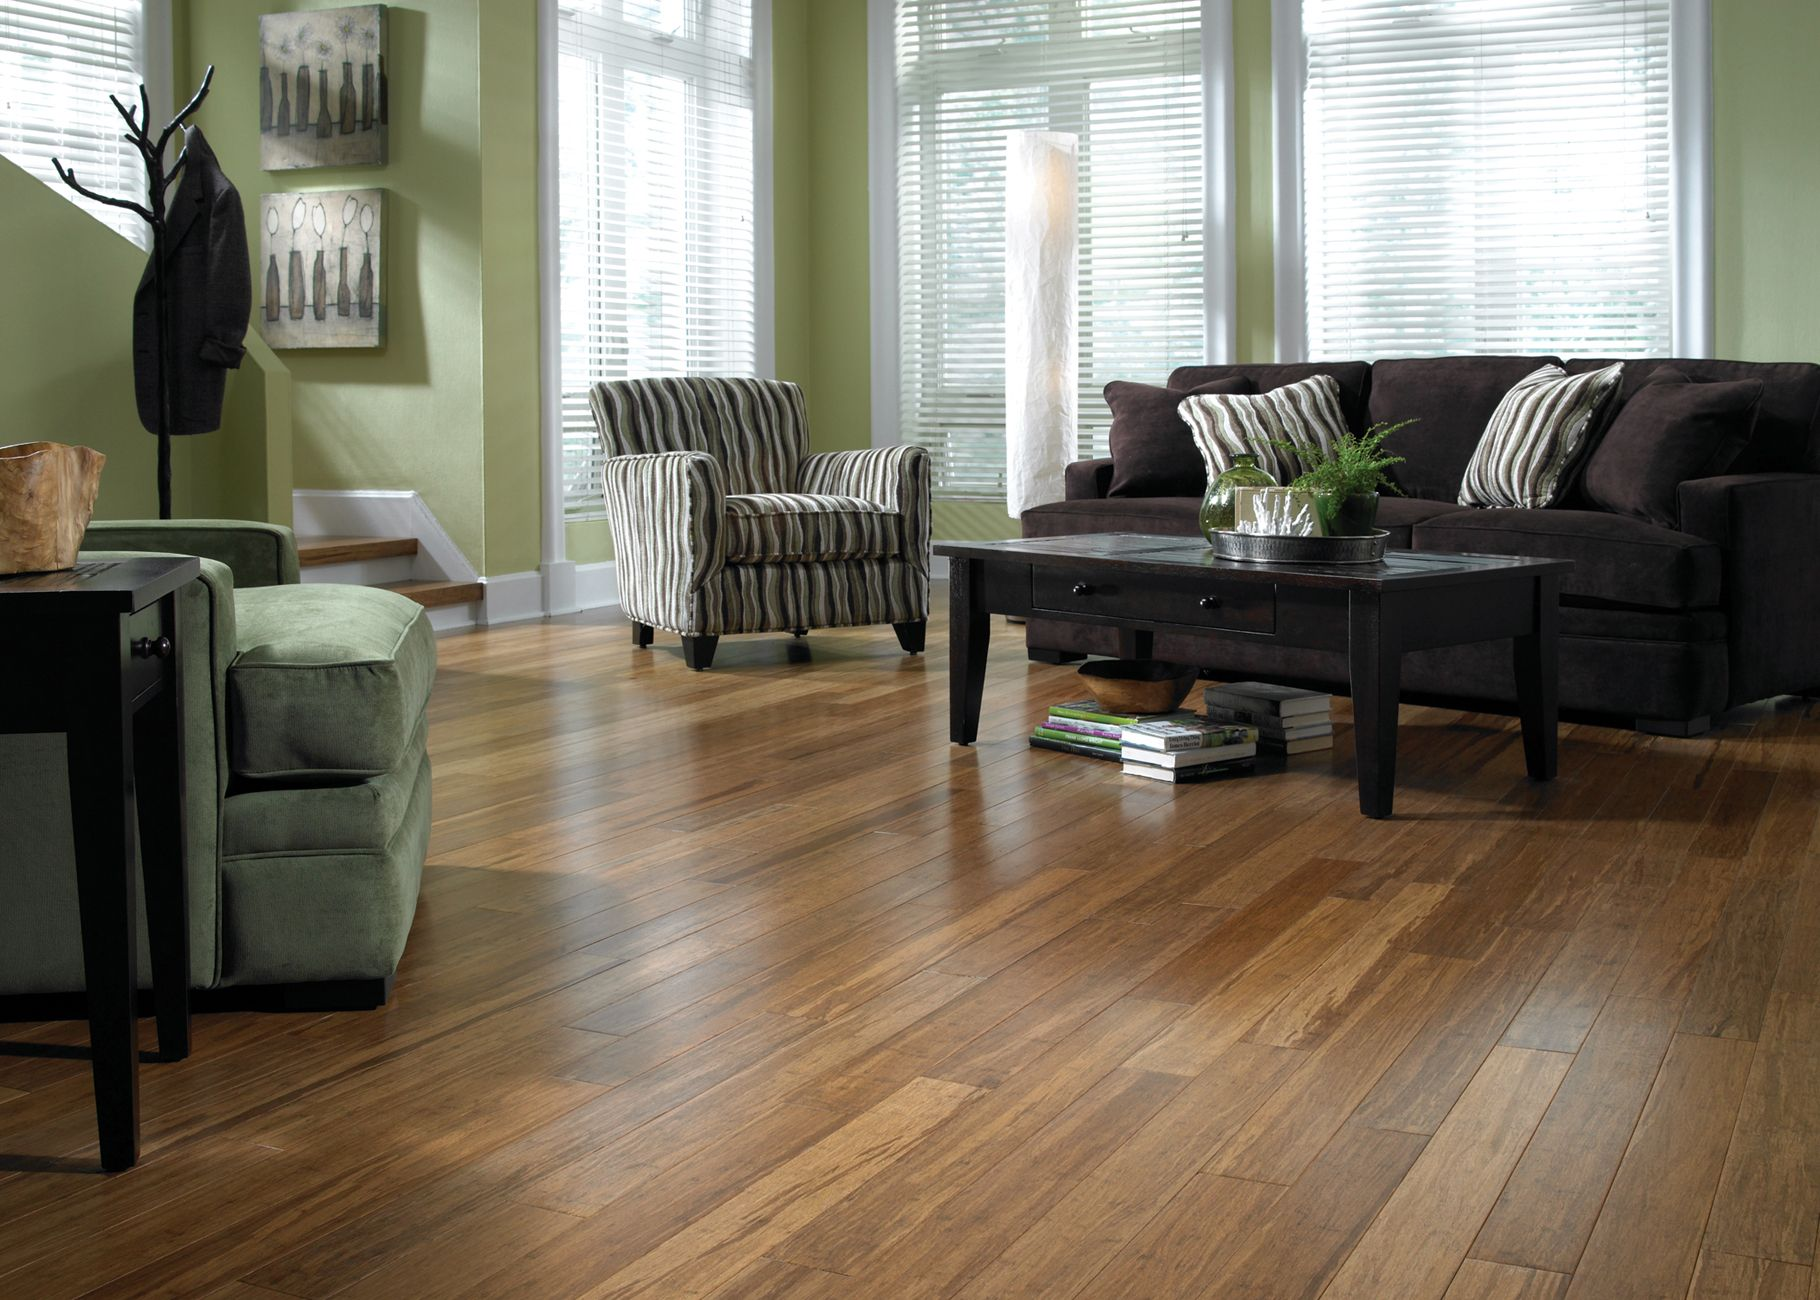 1000+ images about Bamboo Flooring on Pinterest - ^